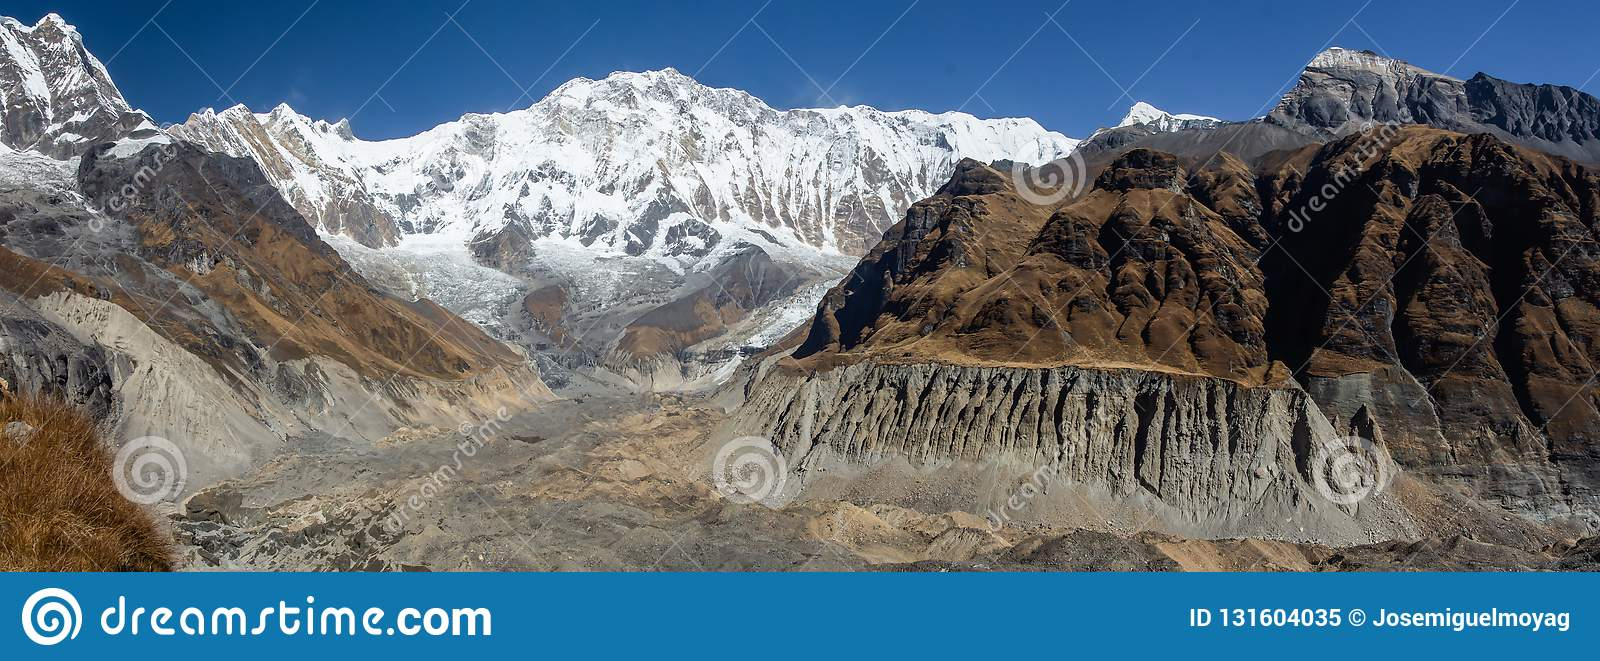 Panorama of Annapurna 1 and its glacier with clear blue sky, Himalayas